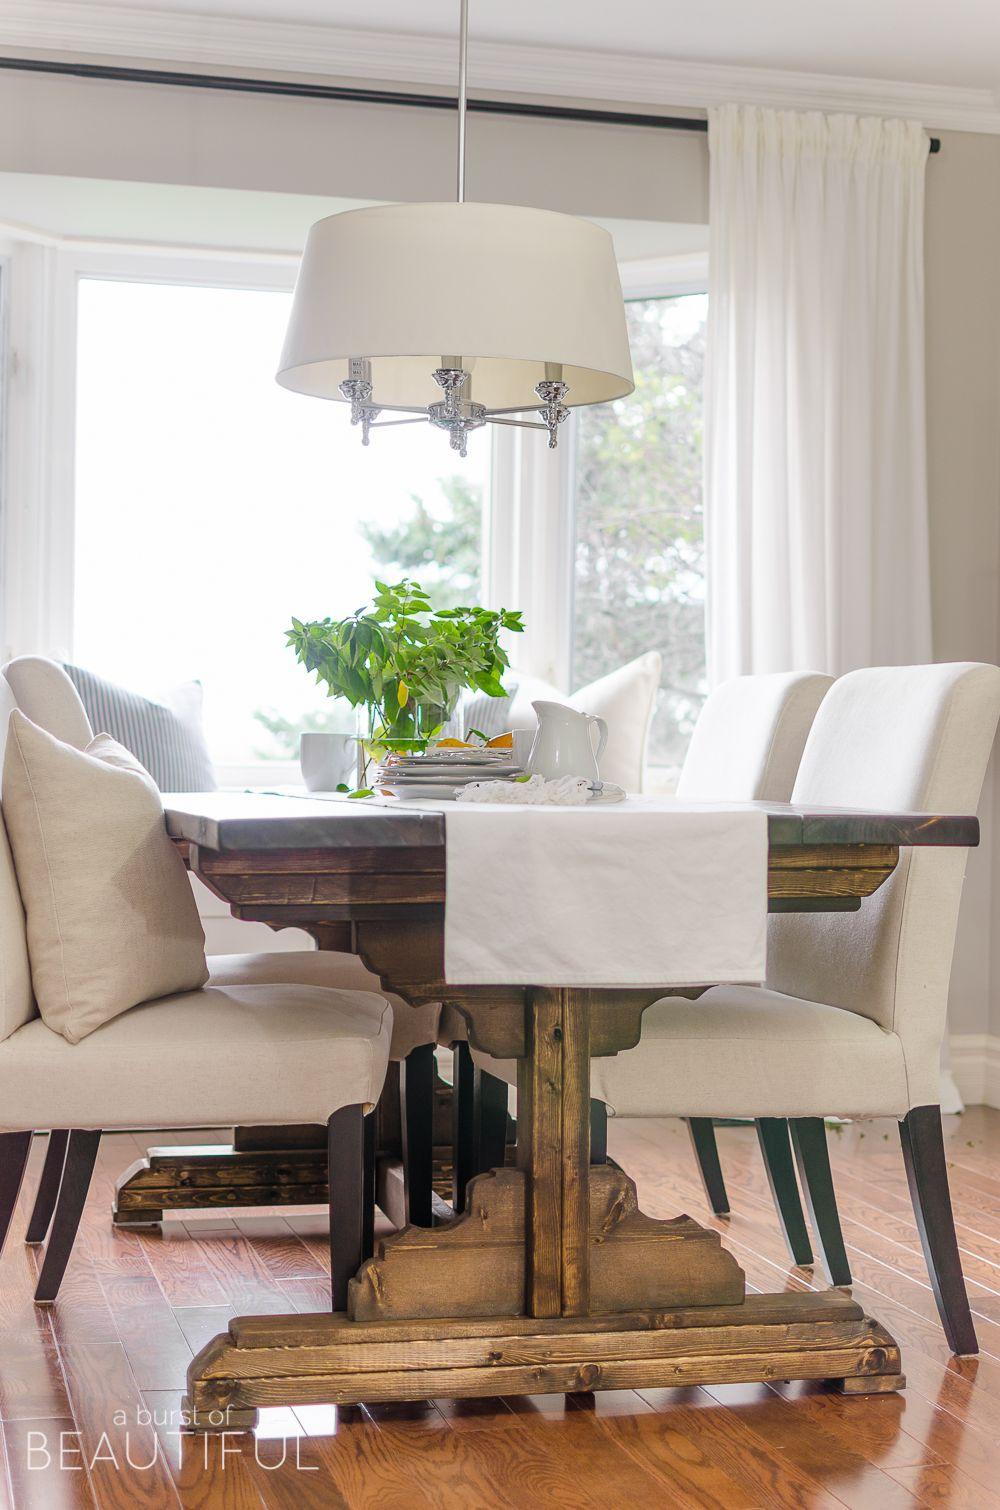 A Bright And Inviting Dining Room Boasts Simple Farmhouse Style With DIY Table Classic Window Bench